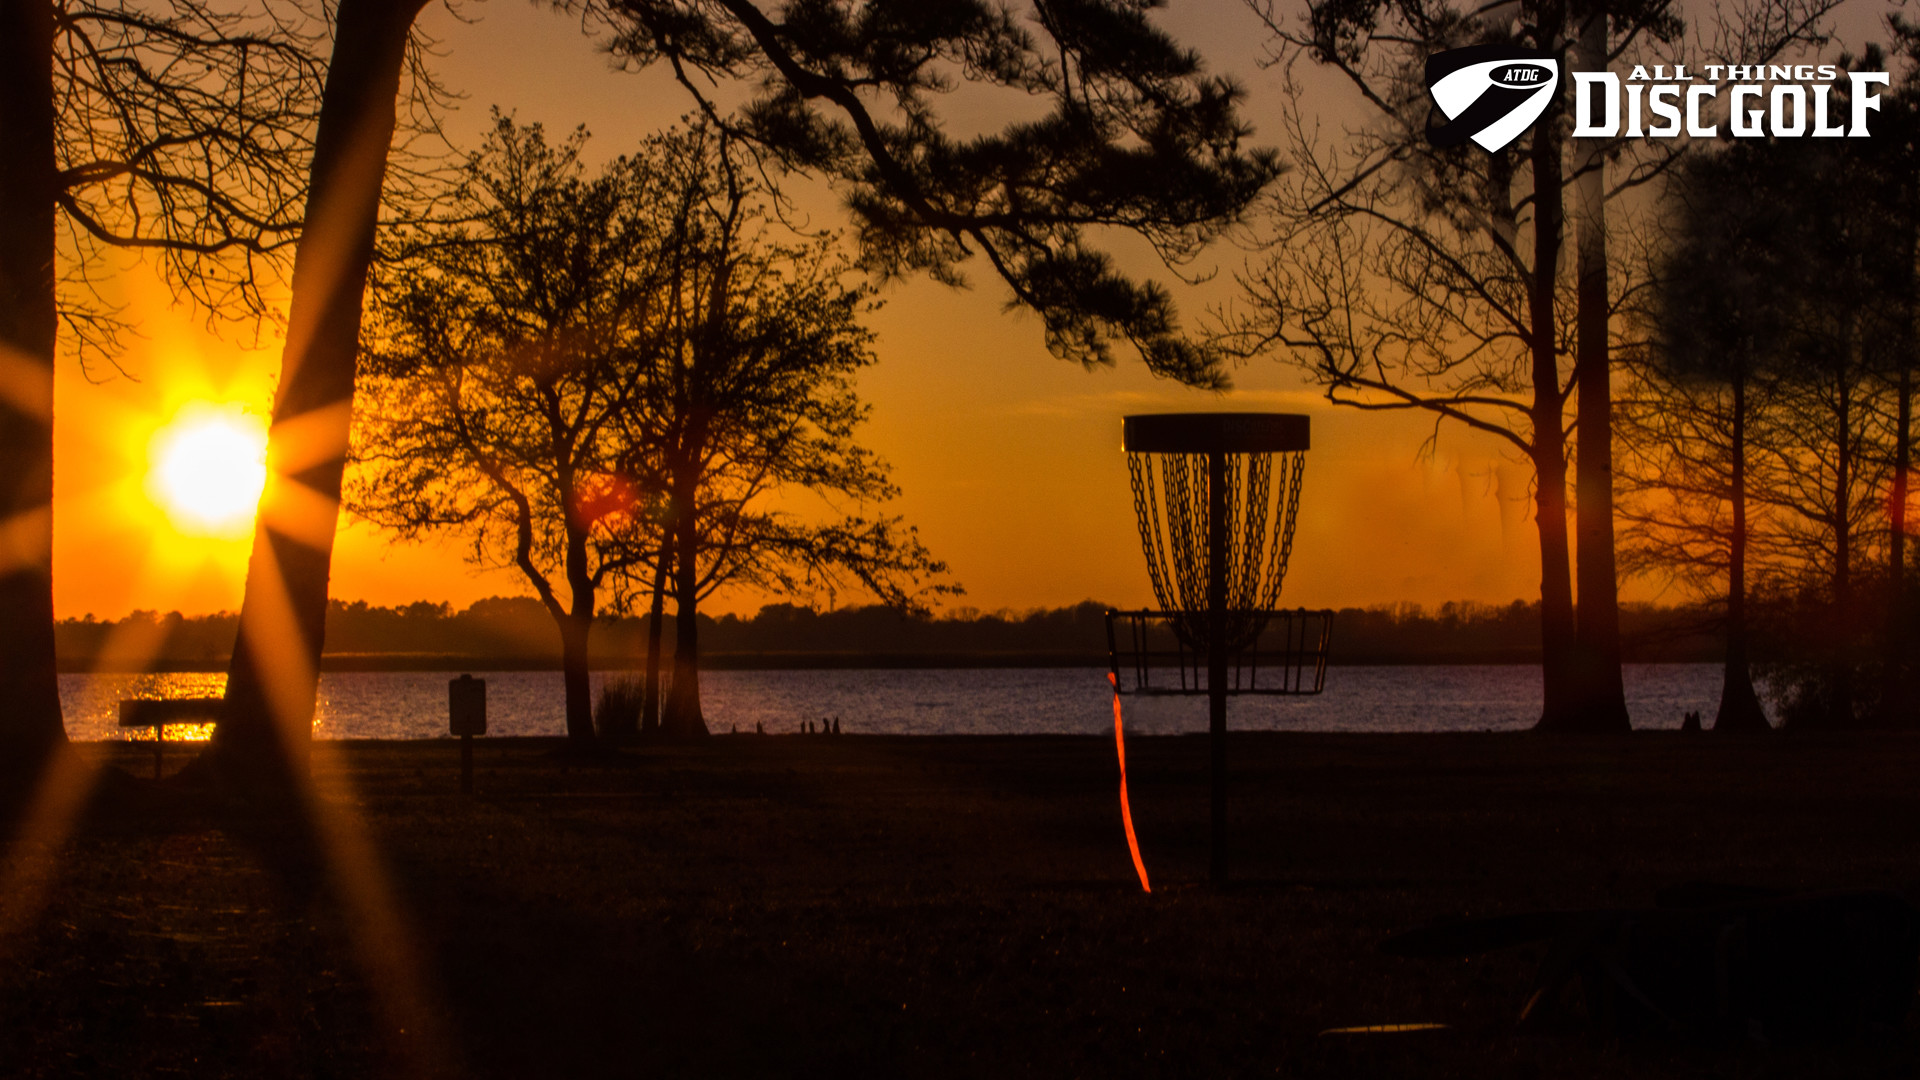 Disc Golf. Backgrounds of Disc Golf in High Definition. 1.512 MB